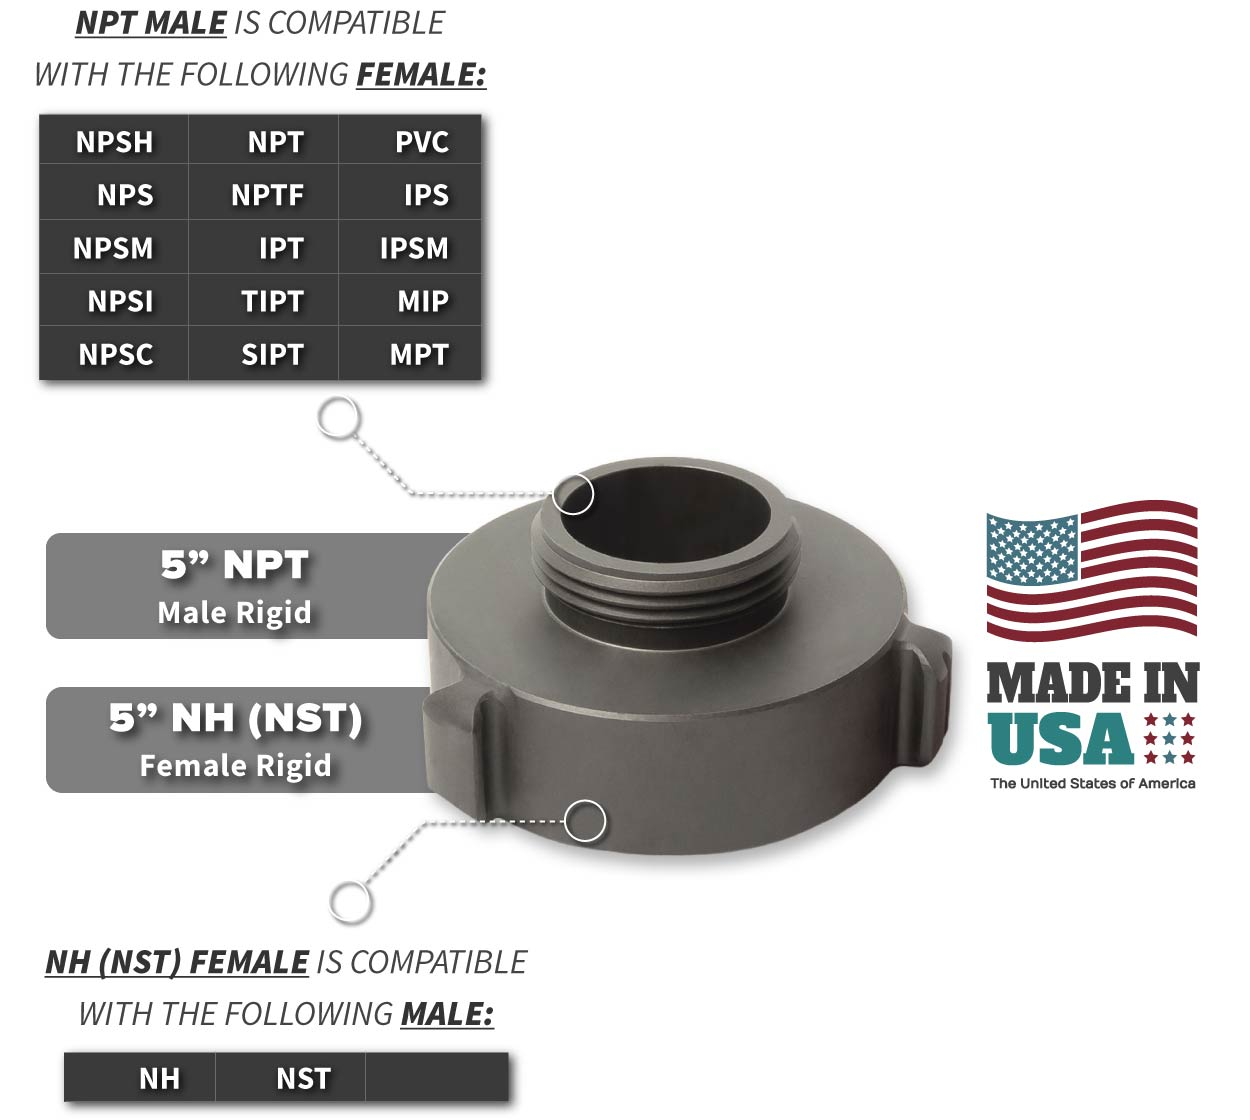 5 Inch NH-NST Female x 5 Inch NPT Male Compatibility Thread Chart